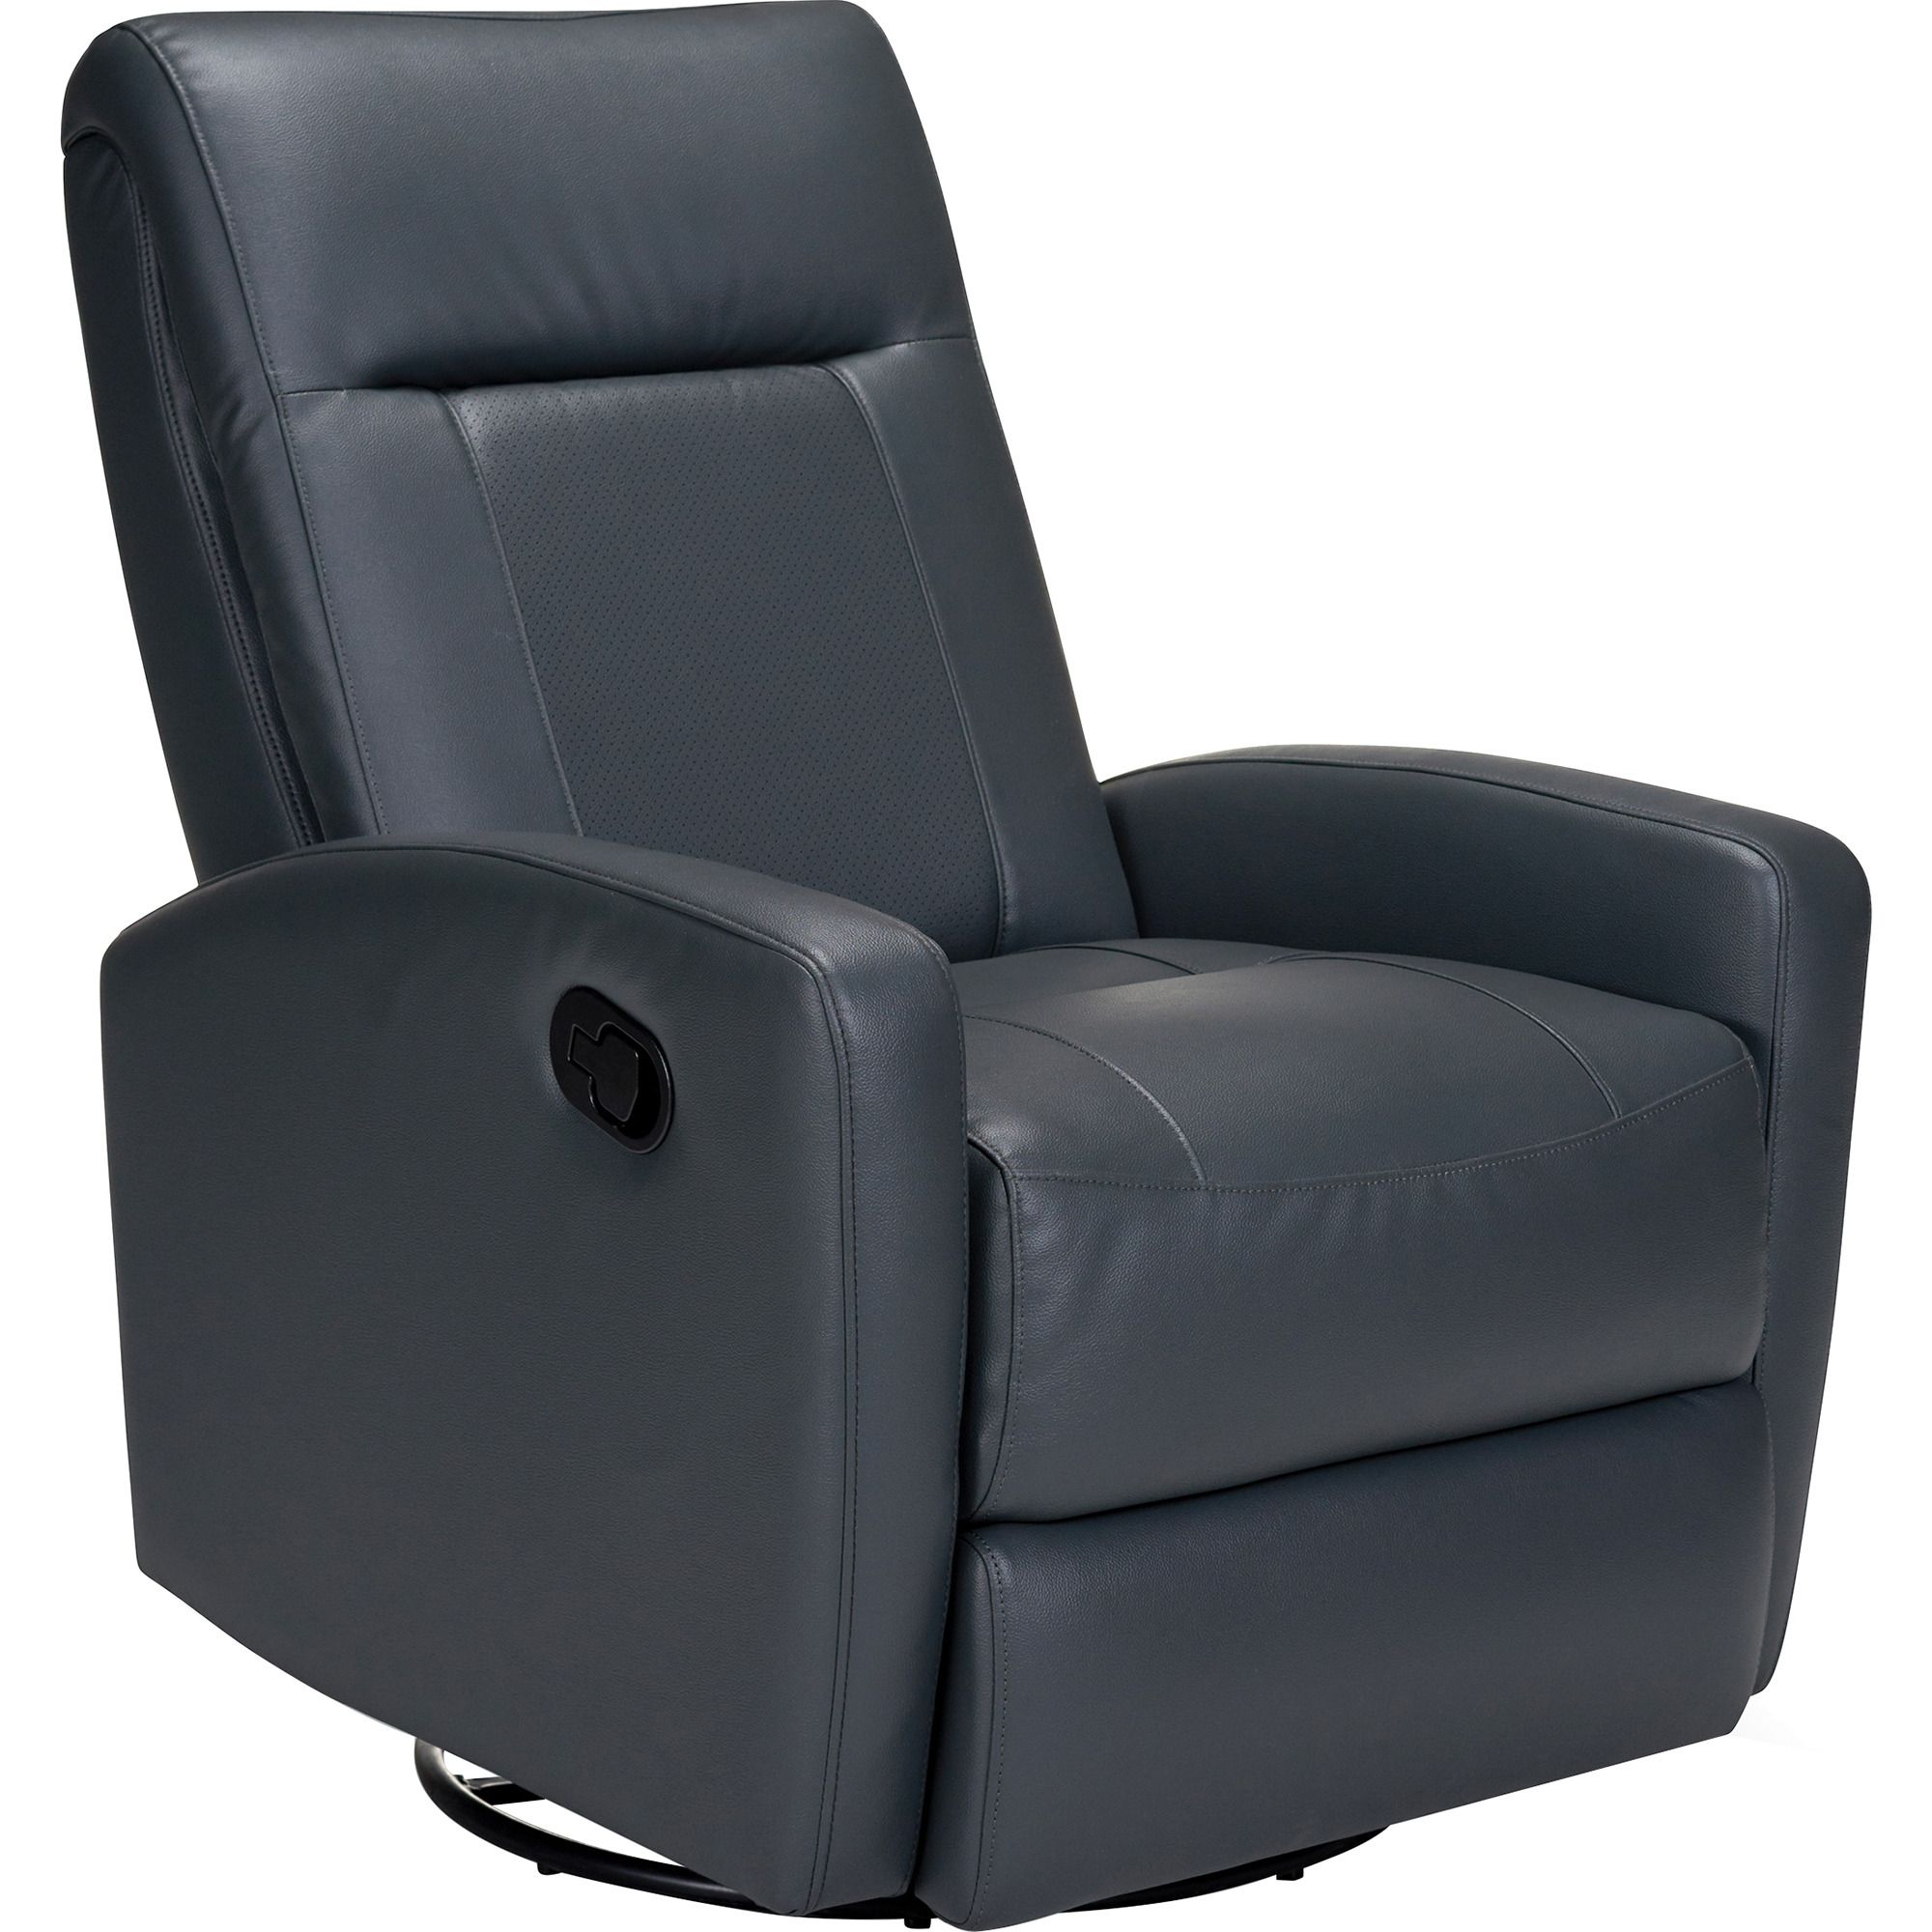 Stefan Swivel Glider Recliner in Black   Opulence Home Furniture   Home  Gallery Stores